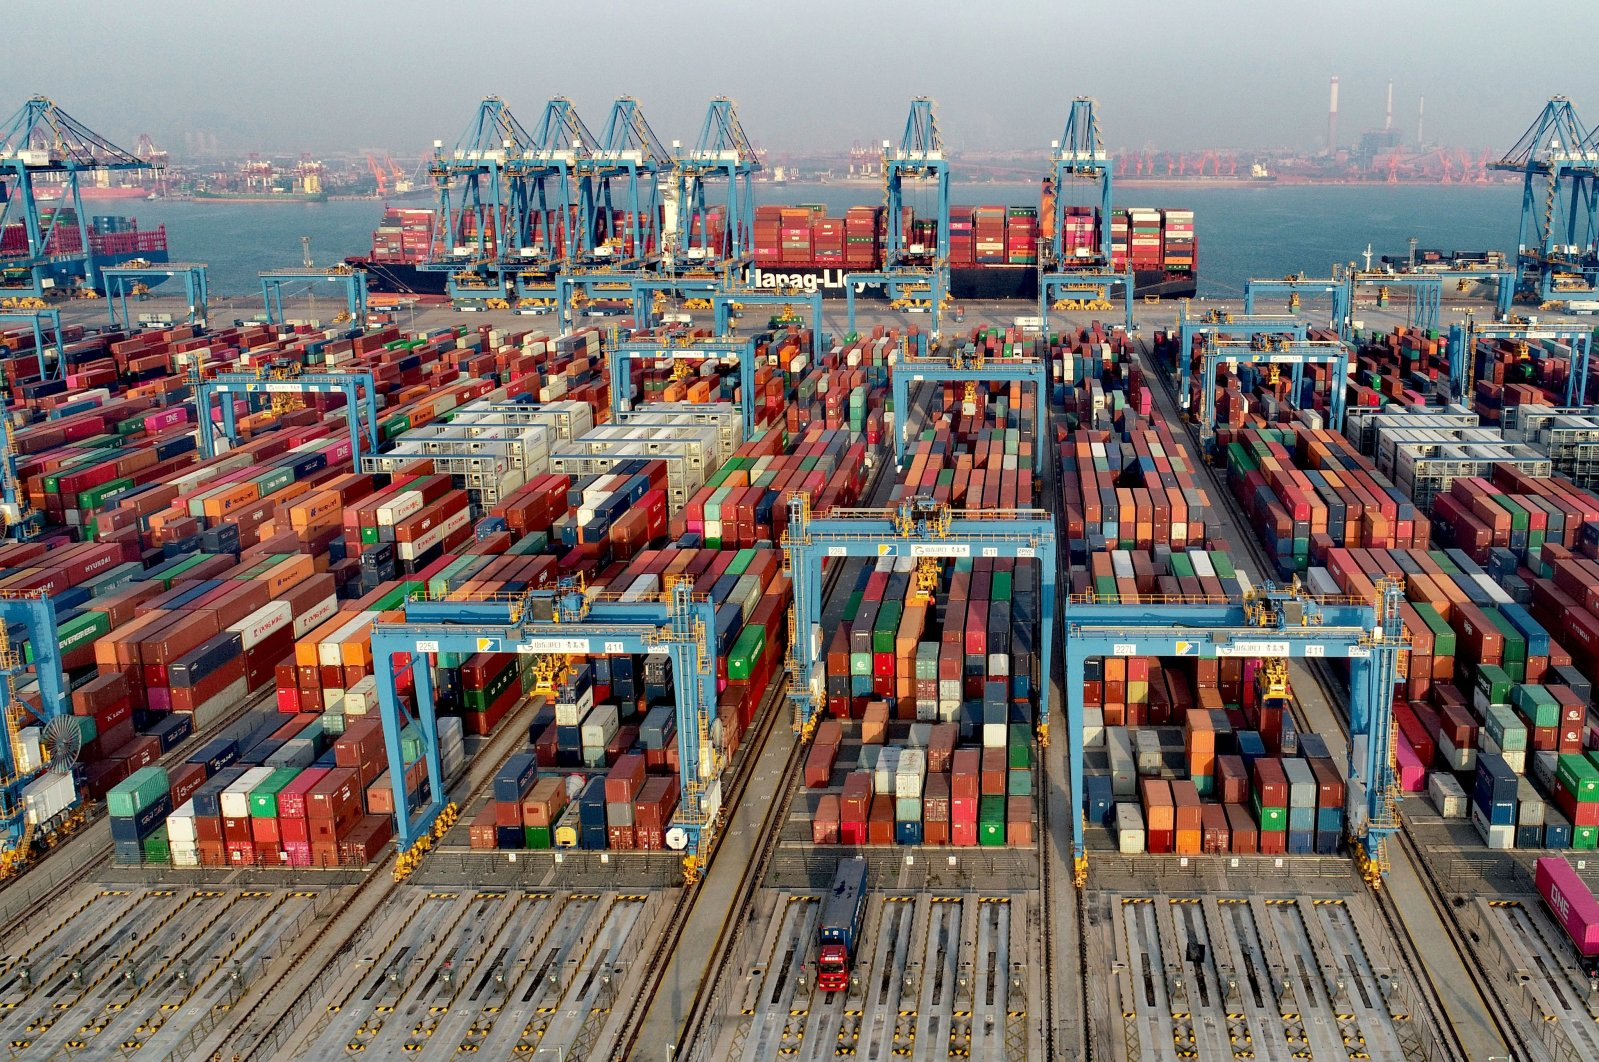 Shipping containers sit stacked at Asia's first fully automated container terminal of Qingdao Port in the Qingdao Area of China (Shandong) Pilot Free Trade Zone (FTZ) in Qingdao, Shandong province, China, Dec. 1, 2020. (Getty Images)